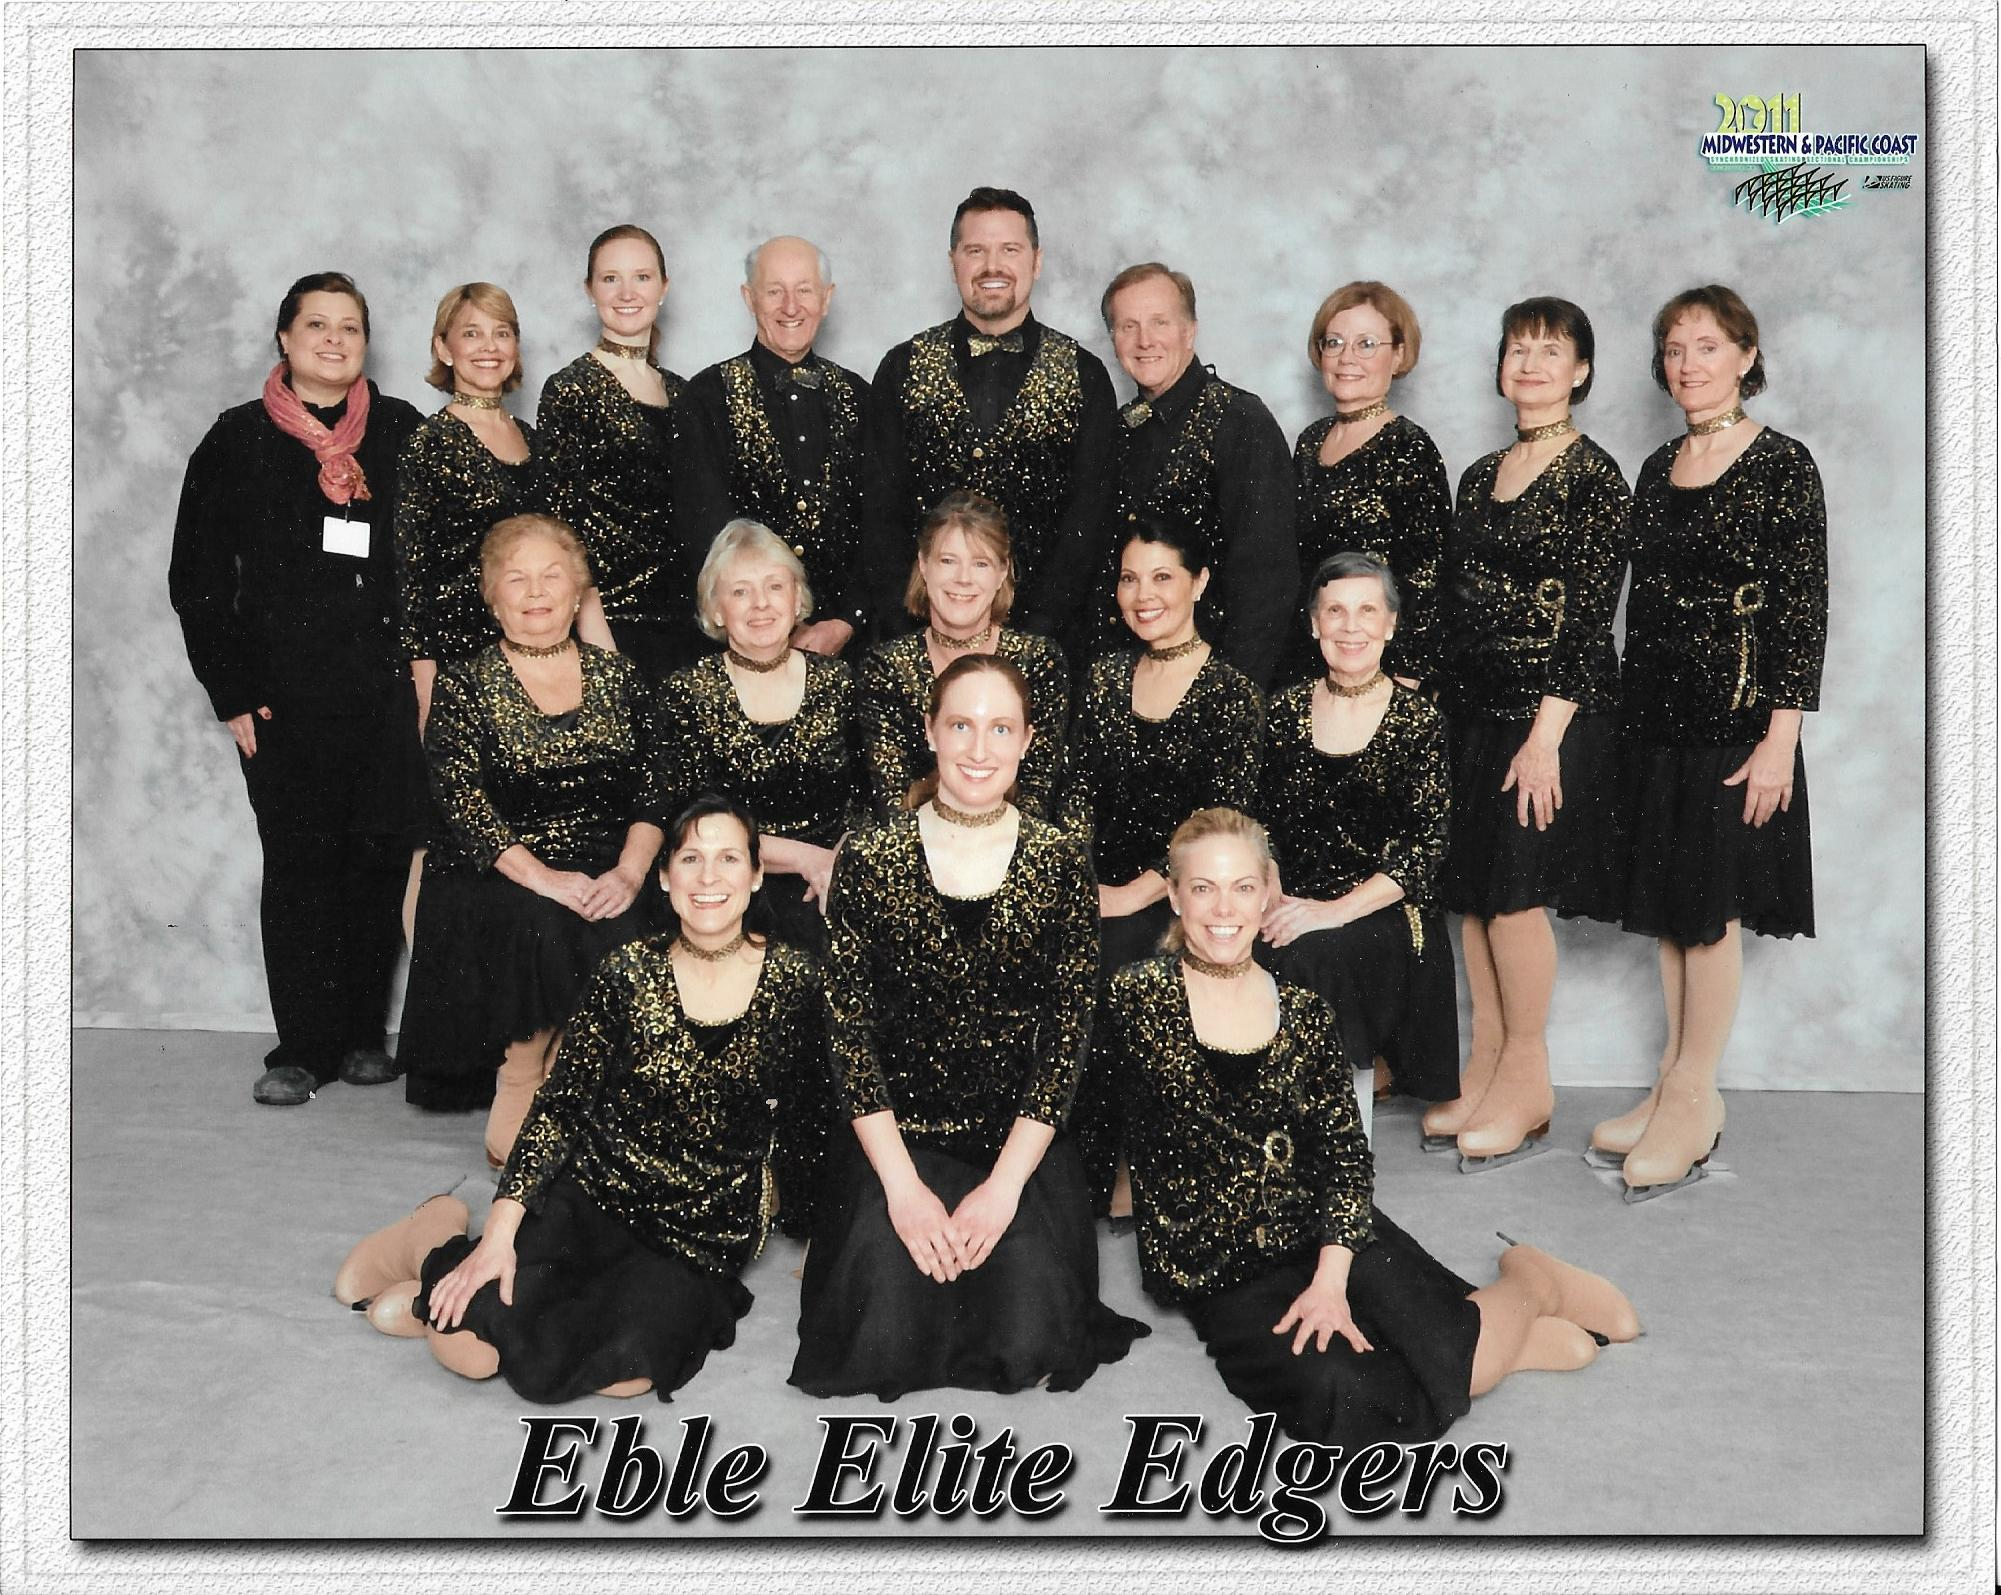 An old team photo of the Eble Elite Edgers wearing black costumes.